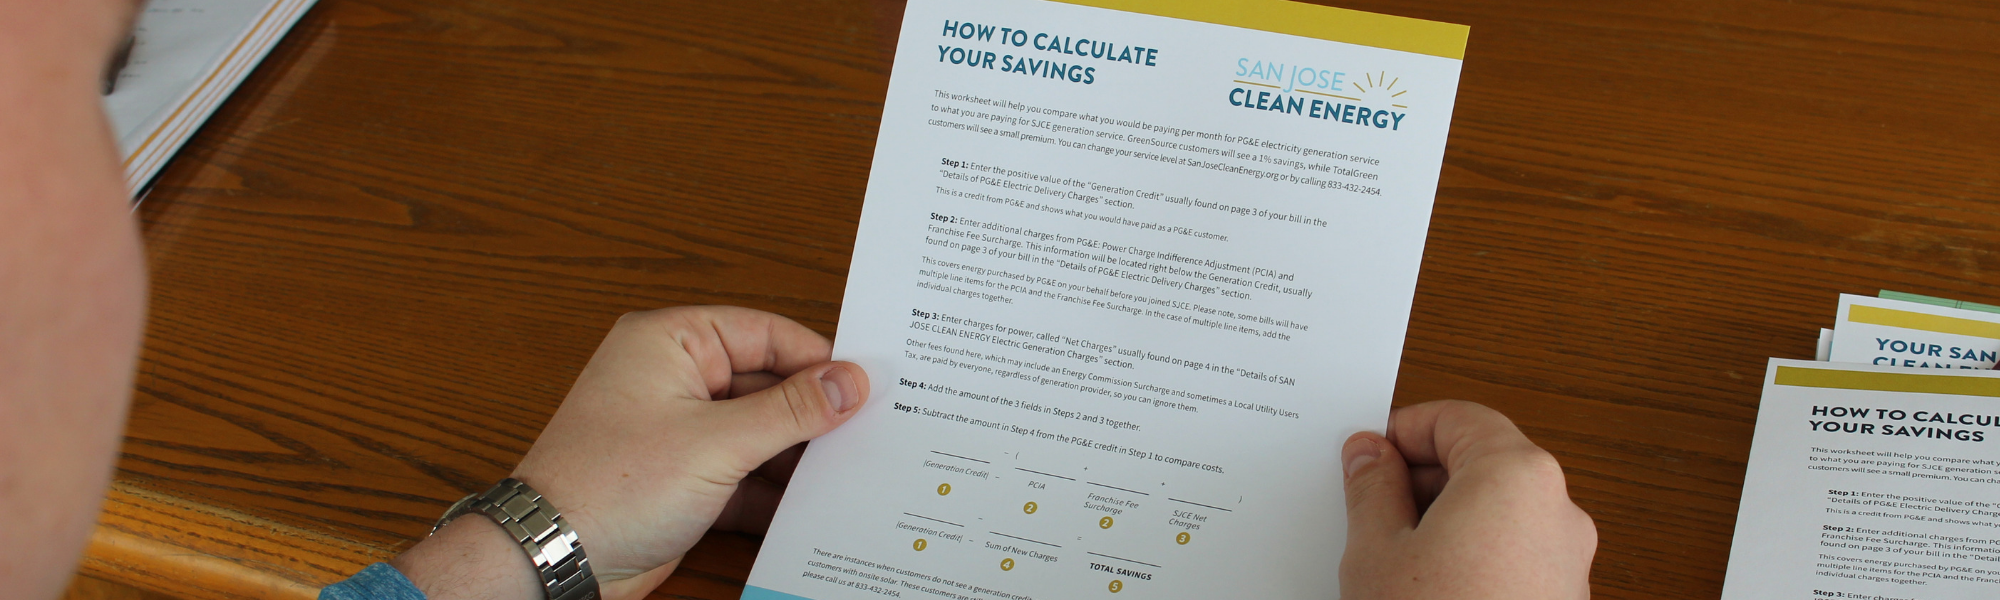 Calculate your savings with San Jose Clean Energy